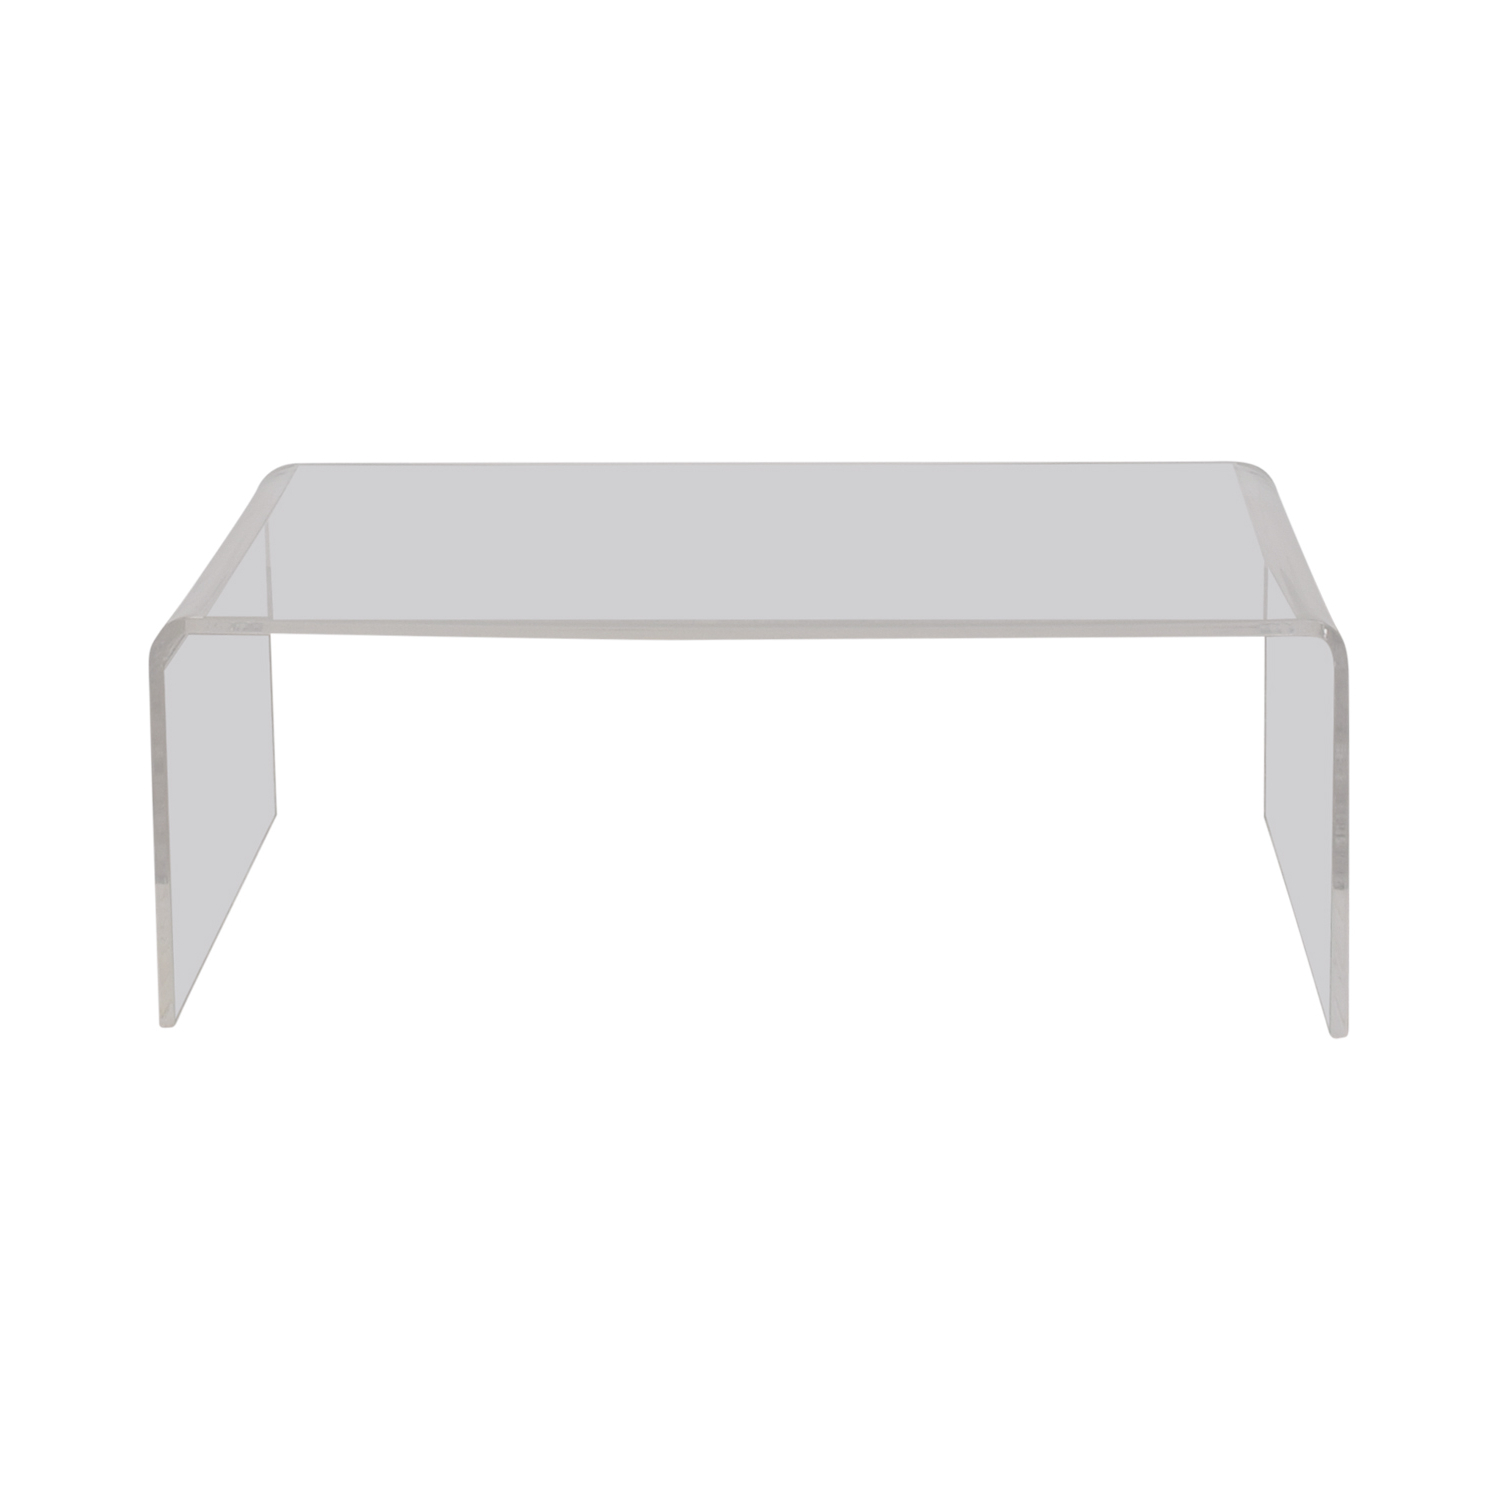 Cb2 Peekaboo Acrylic Coffee Table With Regard To Widely Used Peekaboo Acrylic Coffee Tables (Gallery 2 of 20)